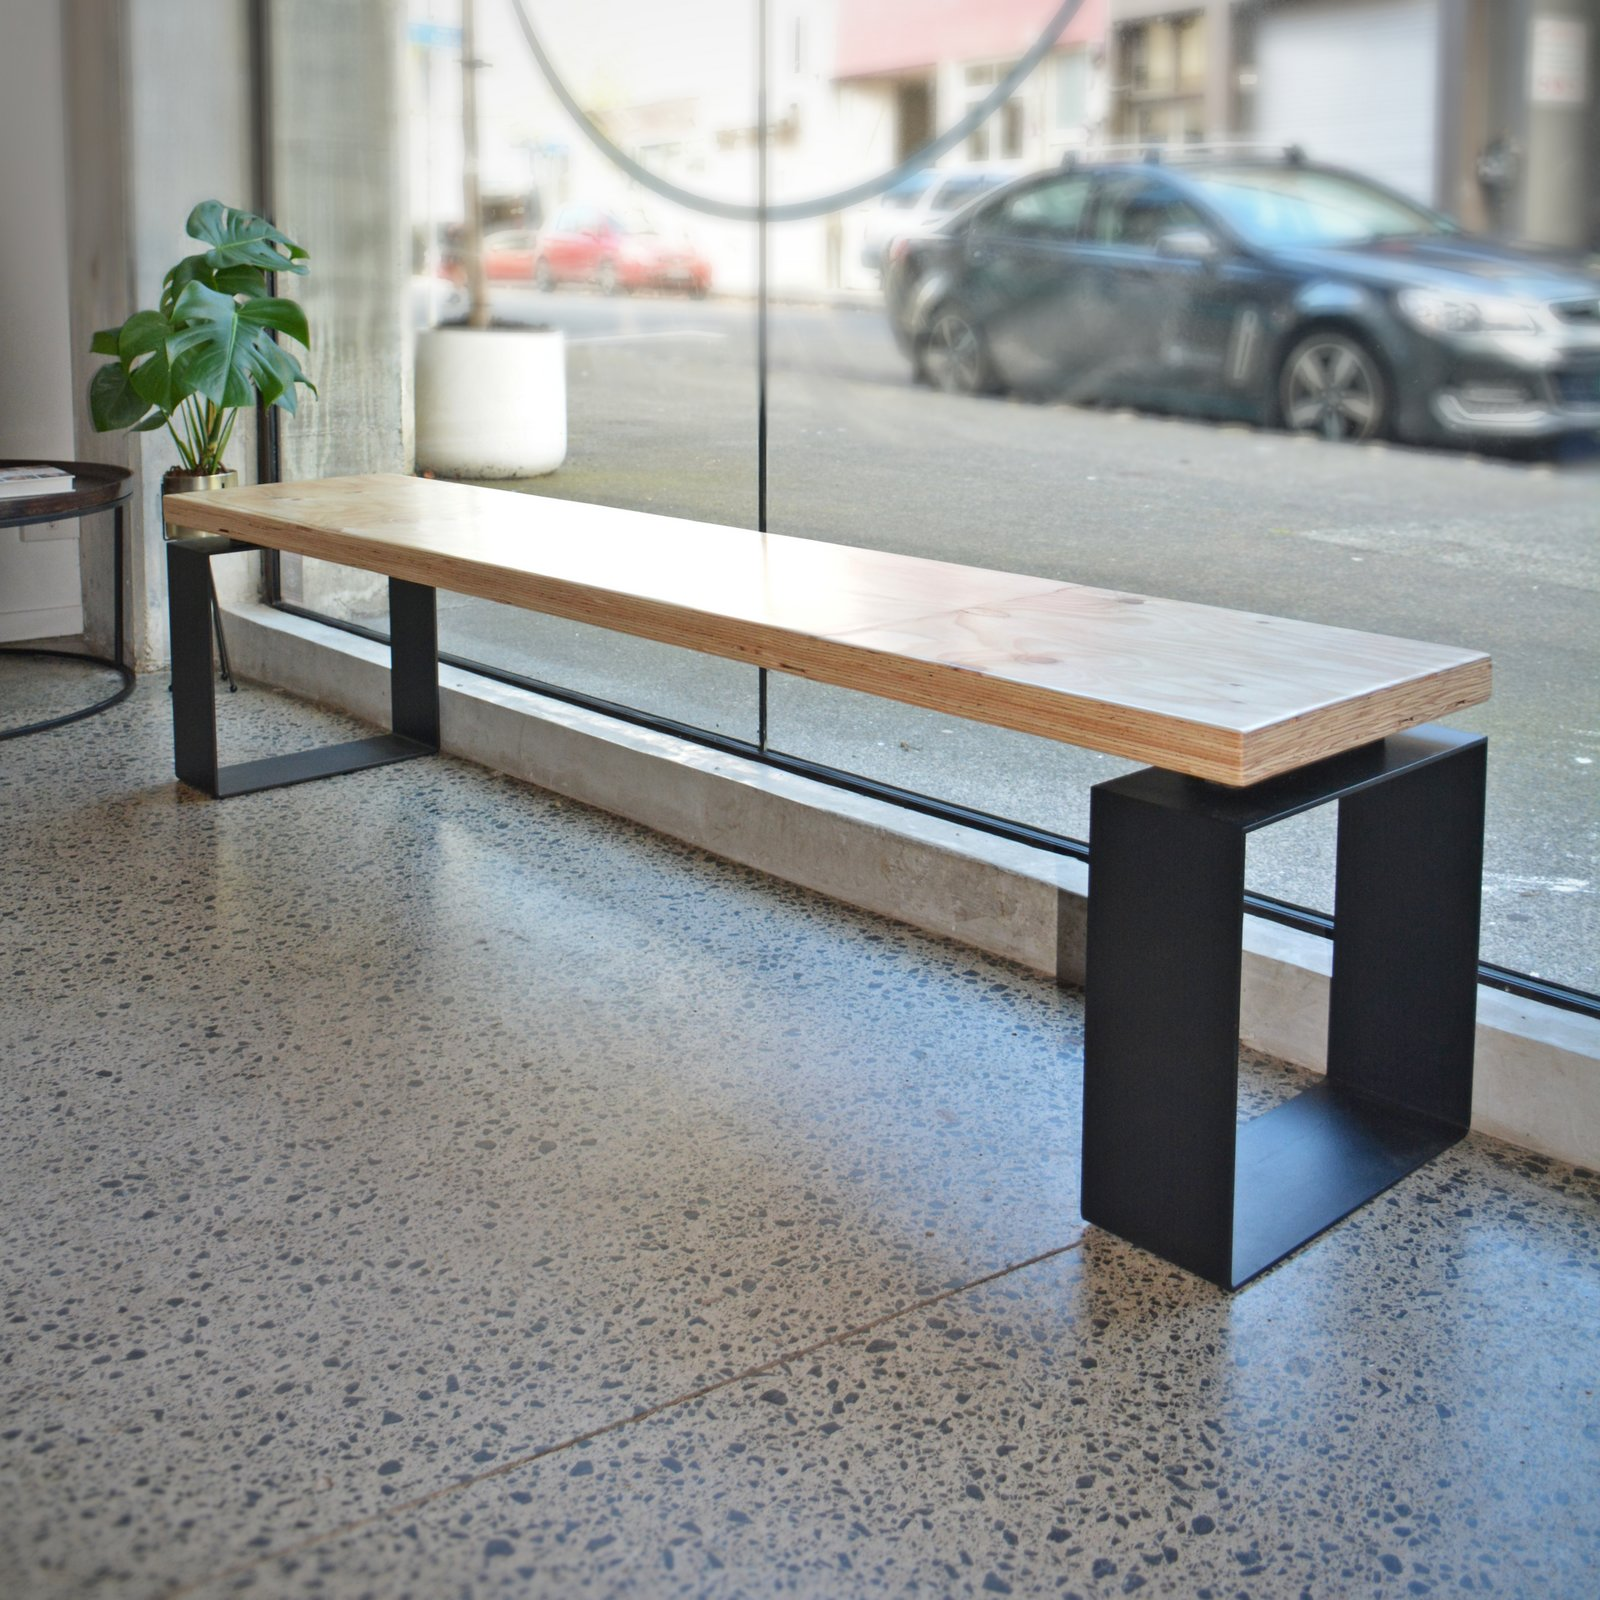 Lvl Industrial Bench Seat Black Sand Furniture